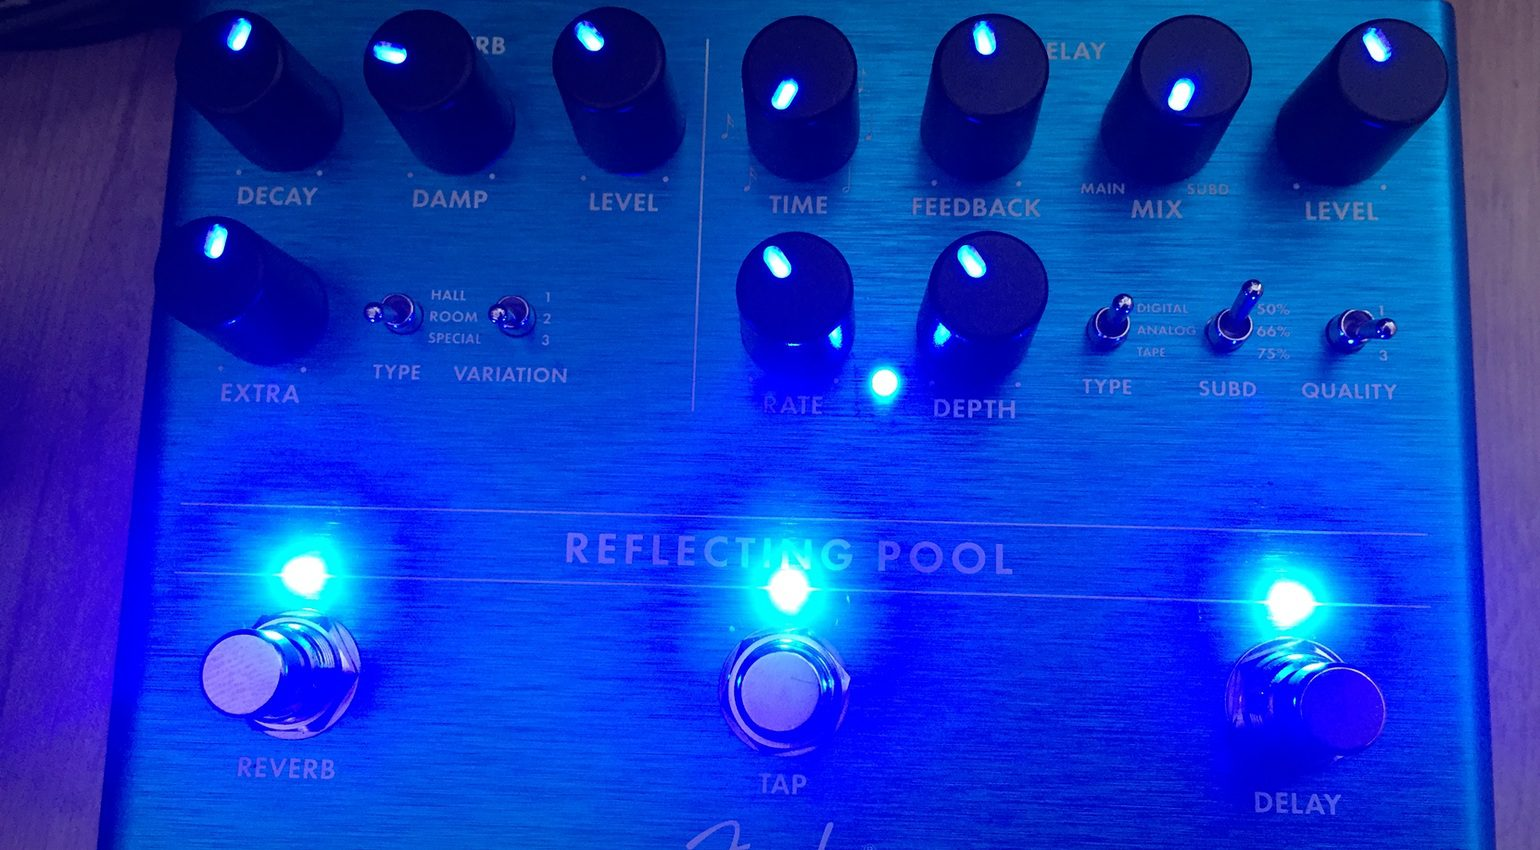 Fender Reflecting Pool Reverb Delay Effekt Pedal LEDs